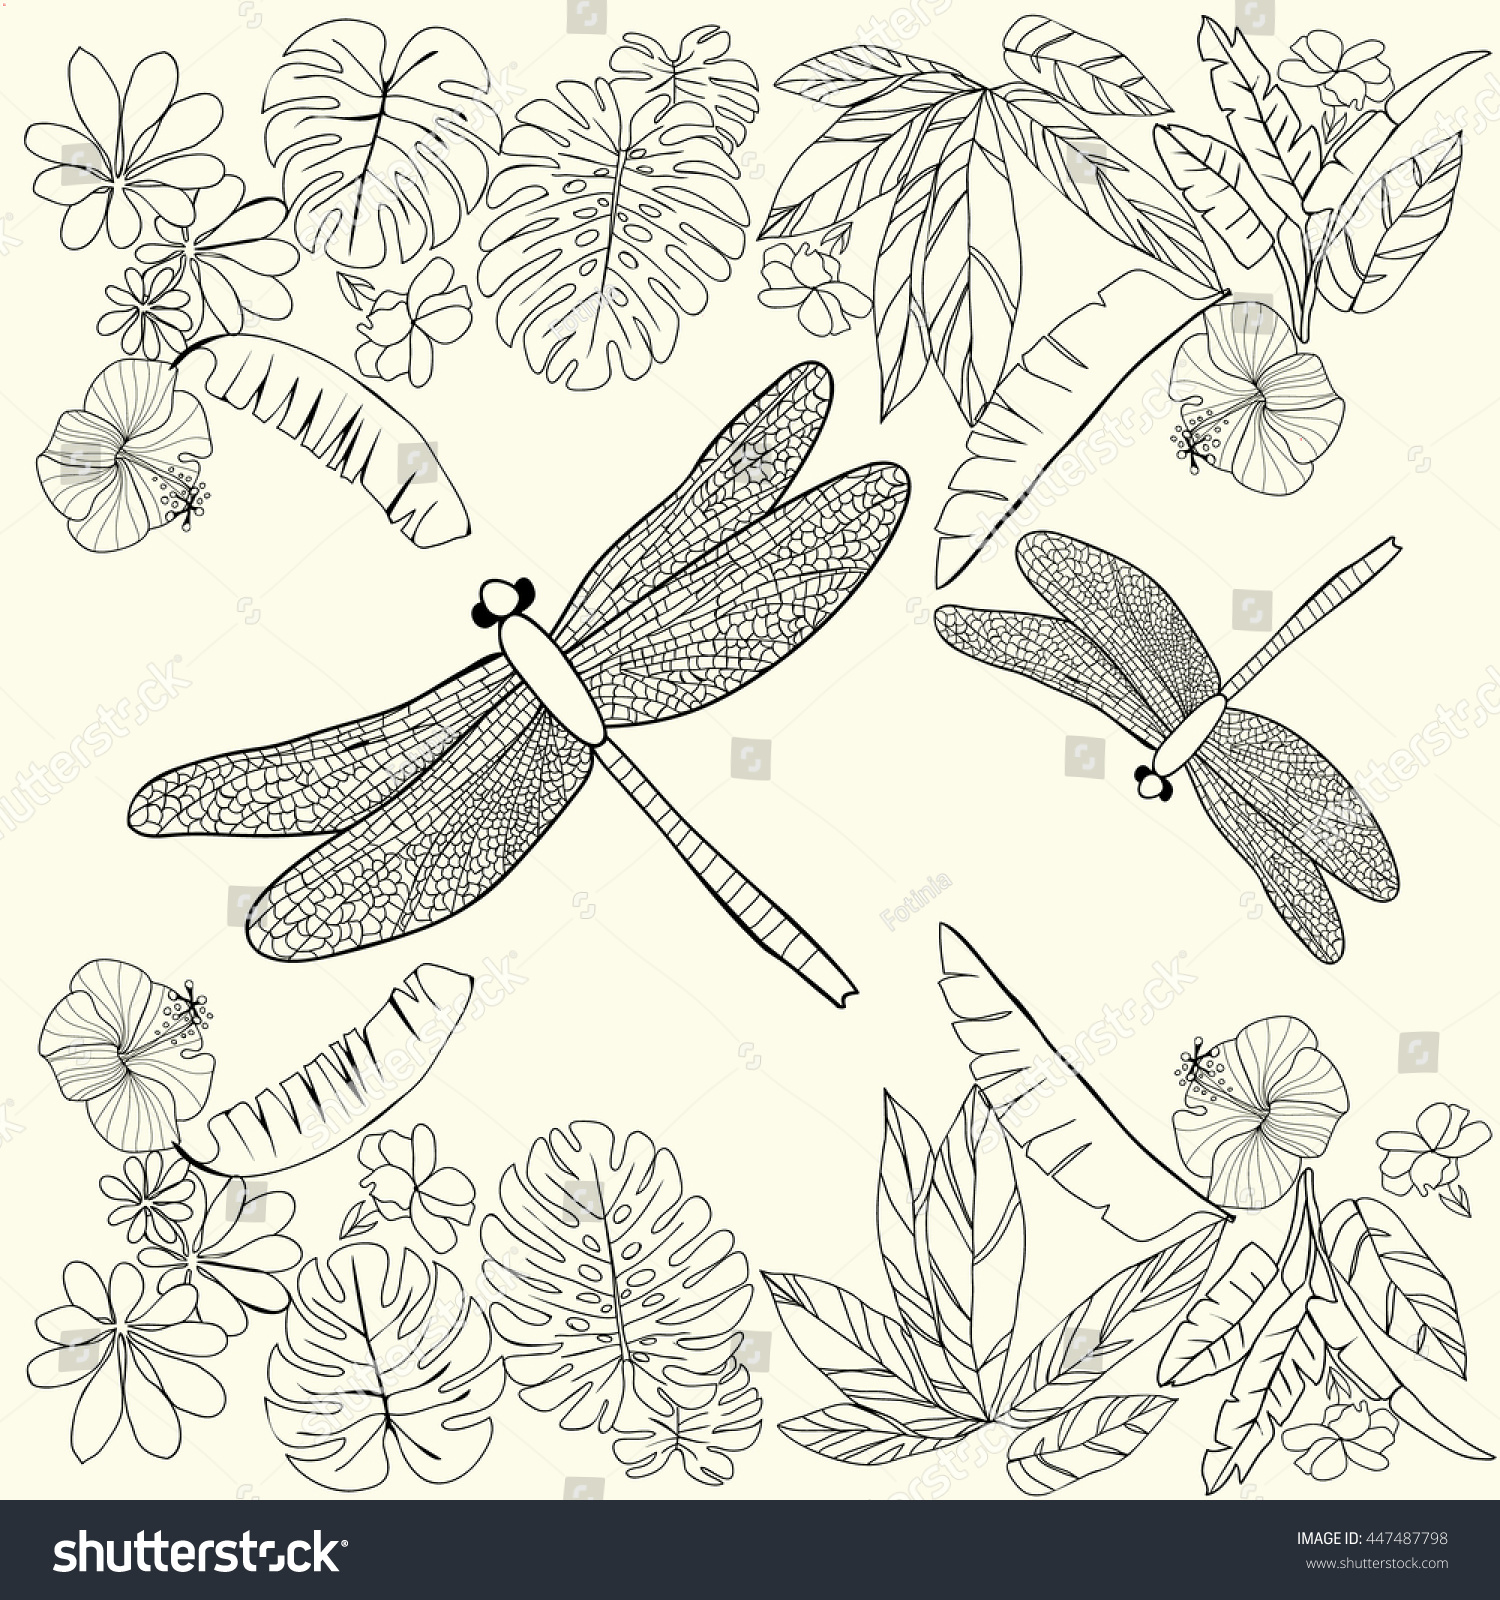 Vector Hand Drawn Tropical Flowers Leaves And Dragonflies Coloring Book For Adult